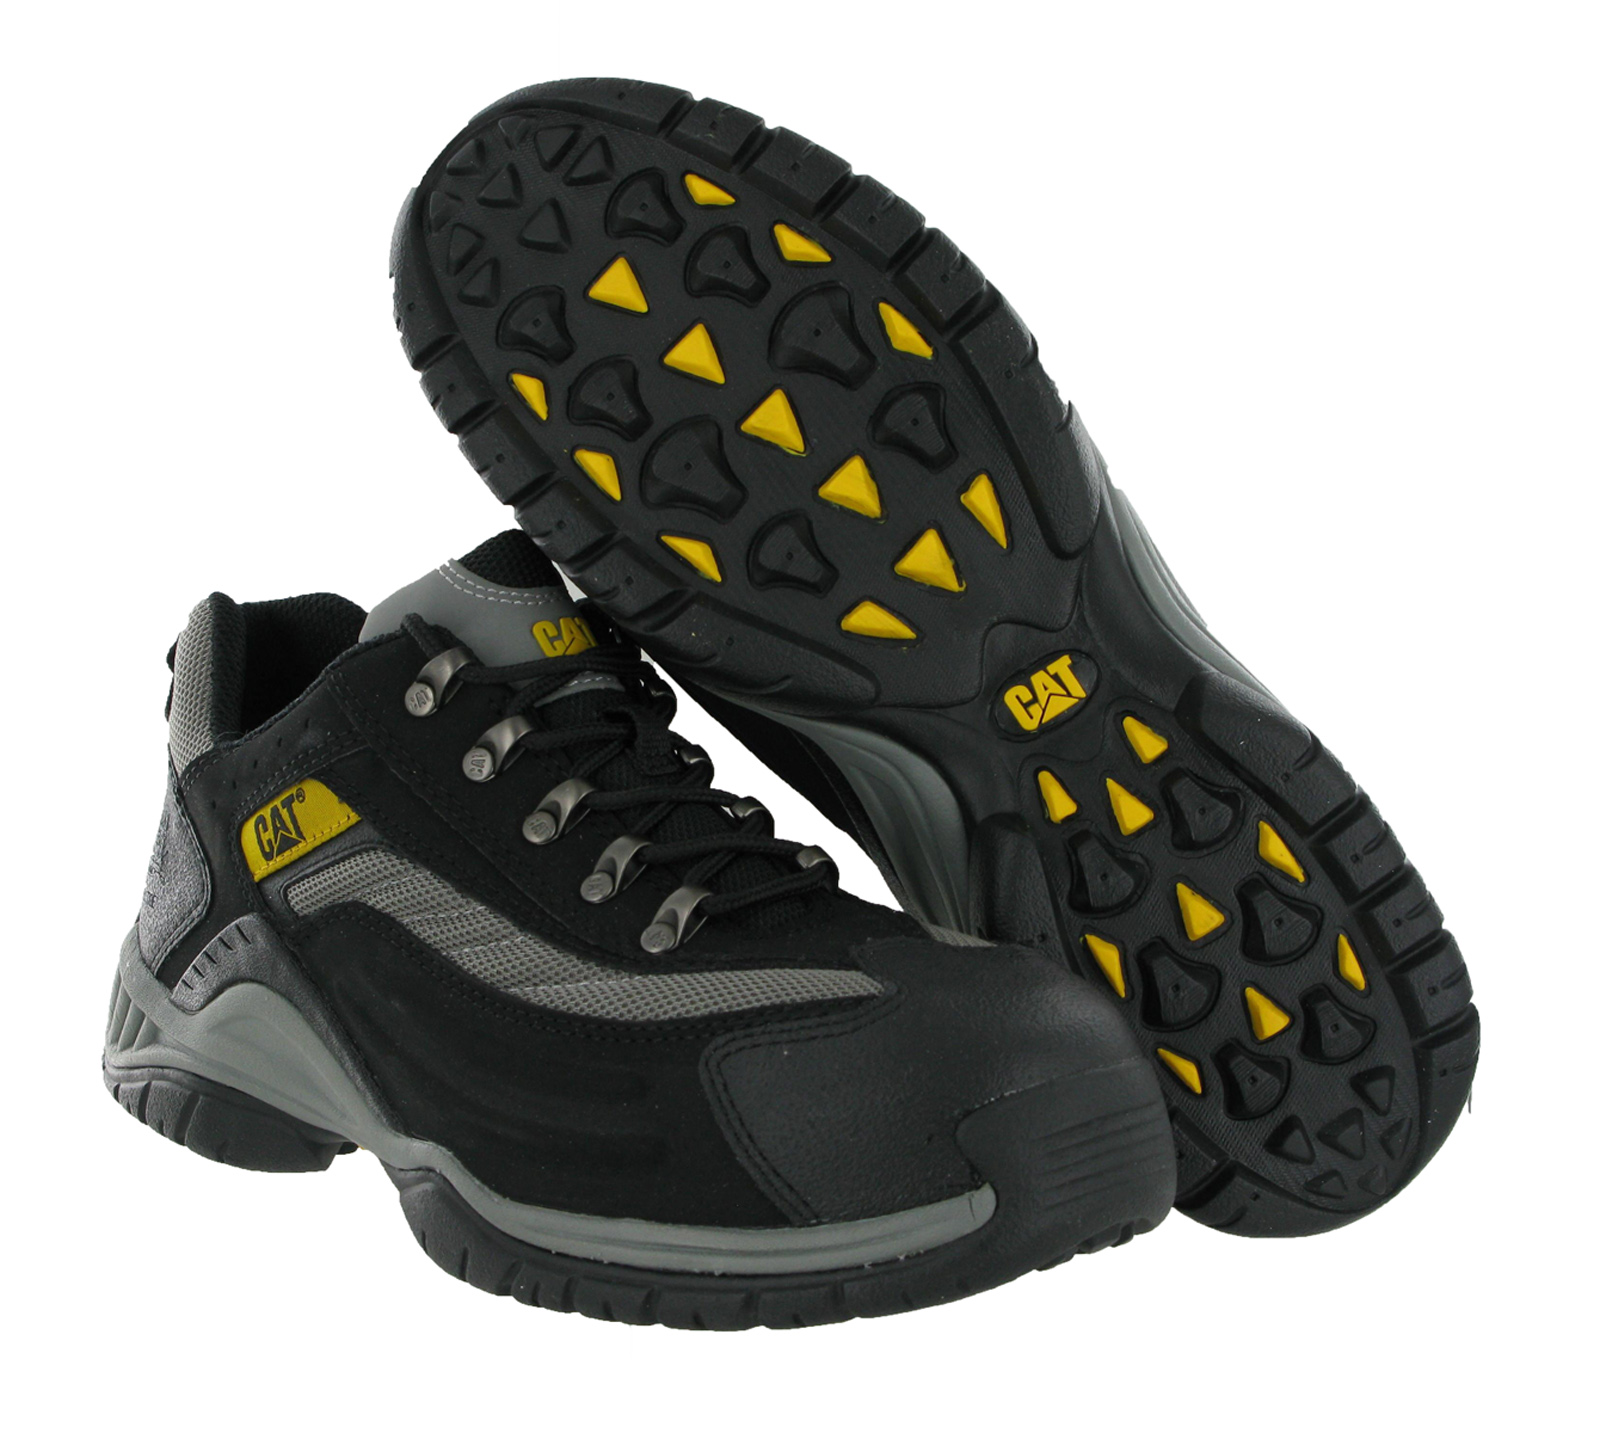 New Mens Caterpillar Moor Black Steel Toe Cap Safety Shoes Trainers Size 3-13